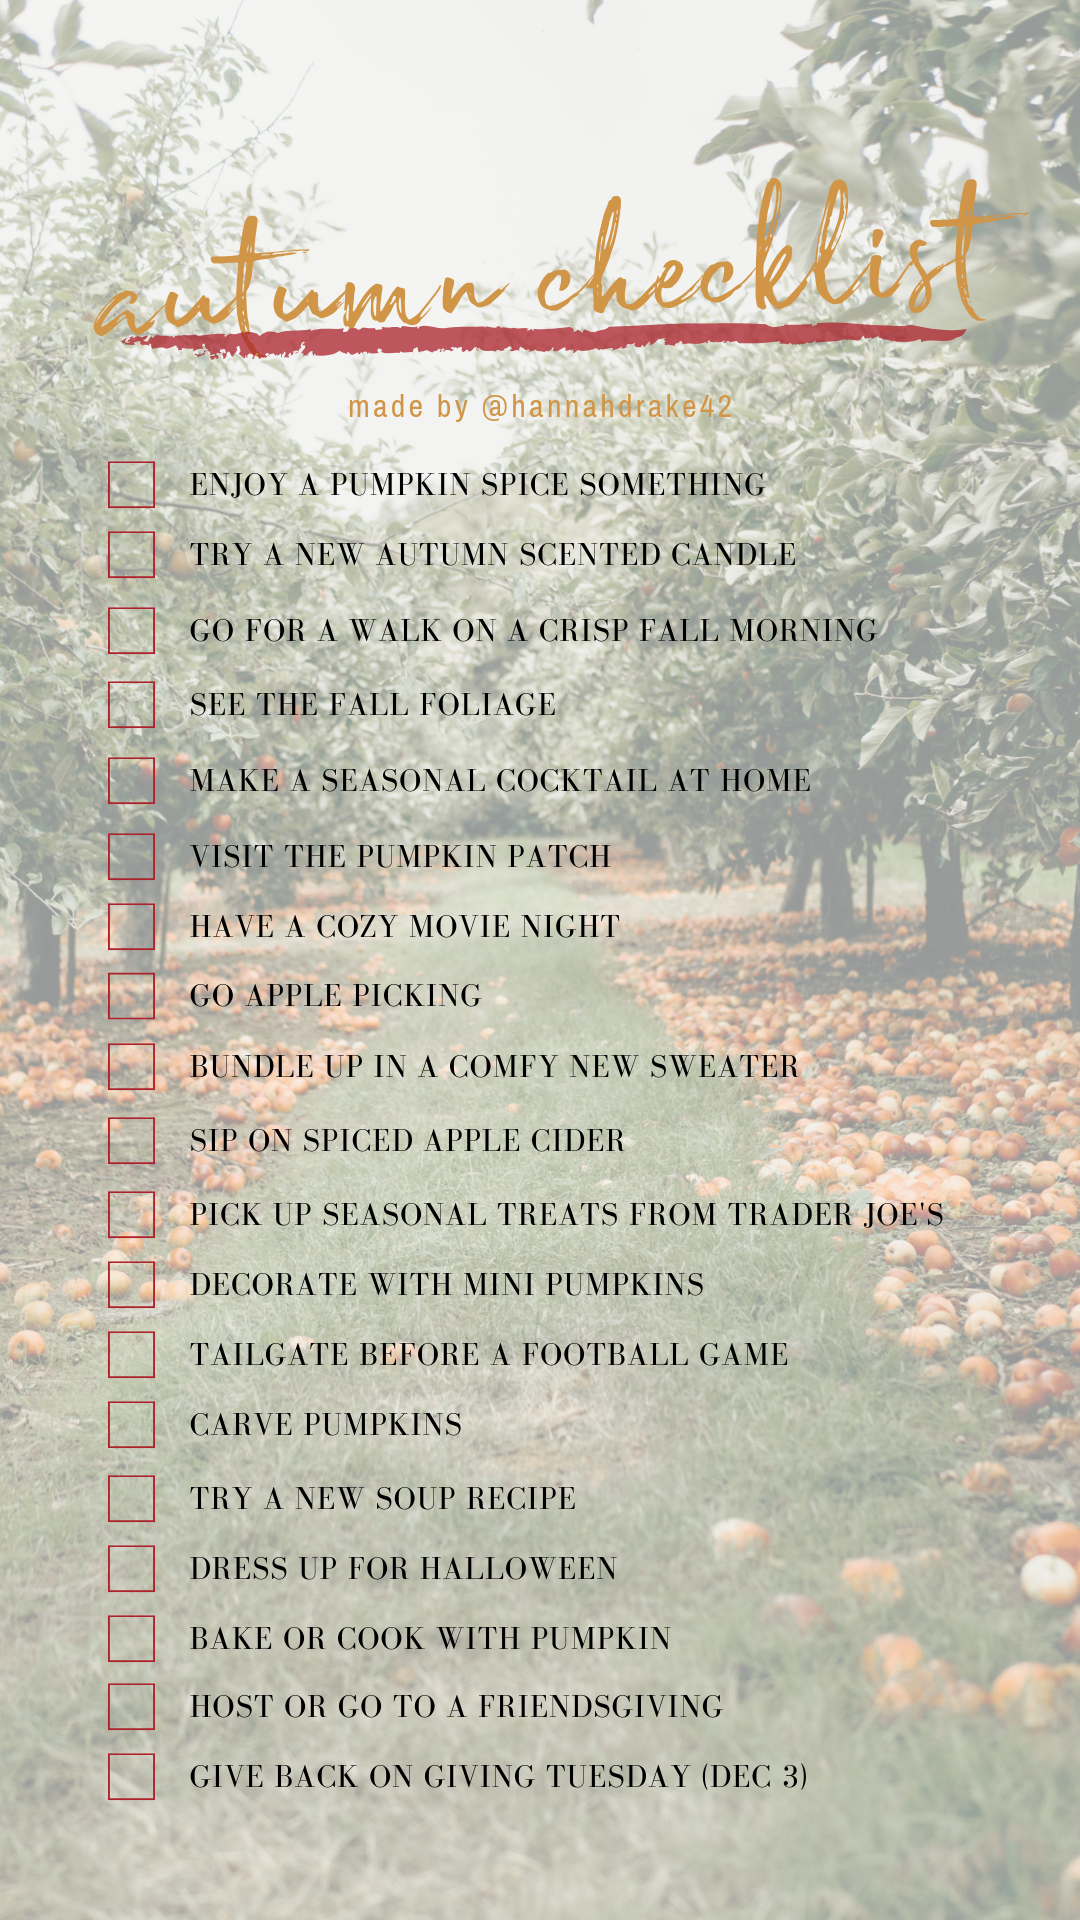 Autumn Checklist by @hannahdrake42